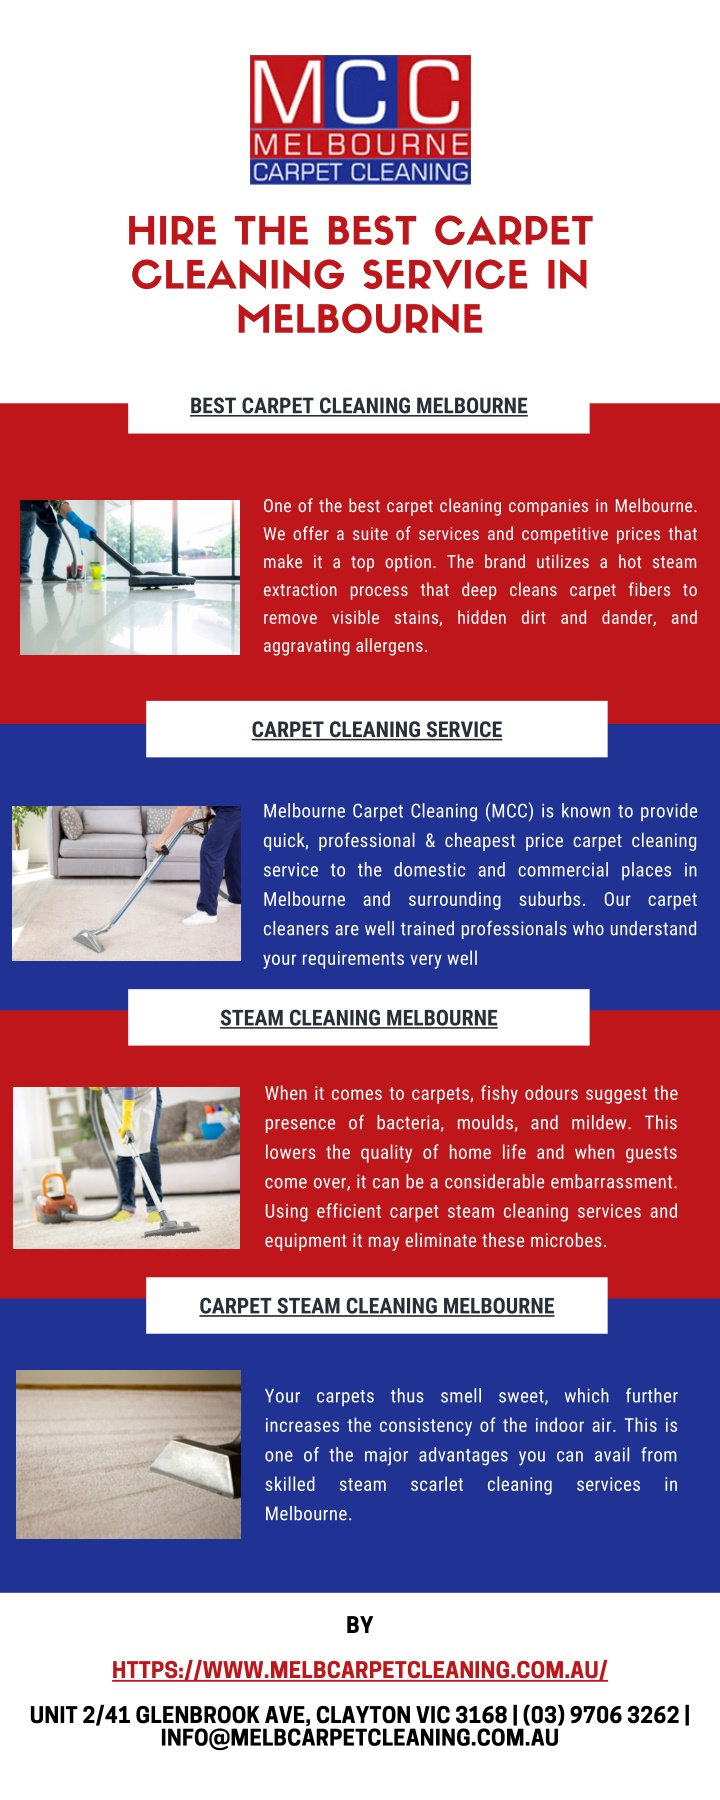 hire the best carpet cleaning service in melbourne n.